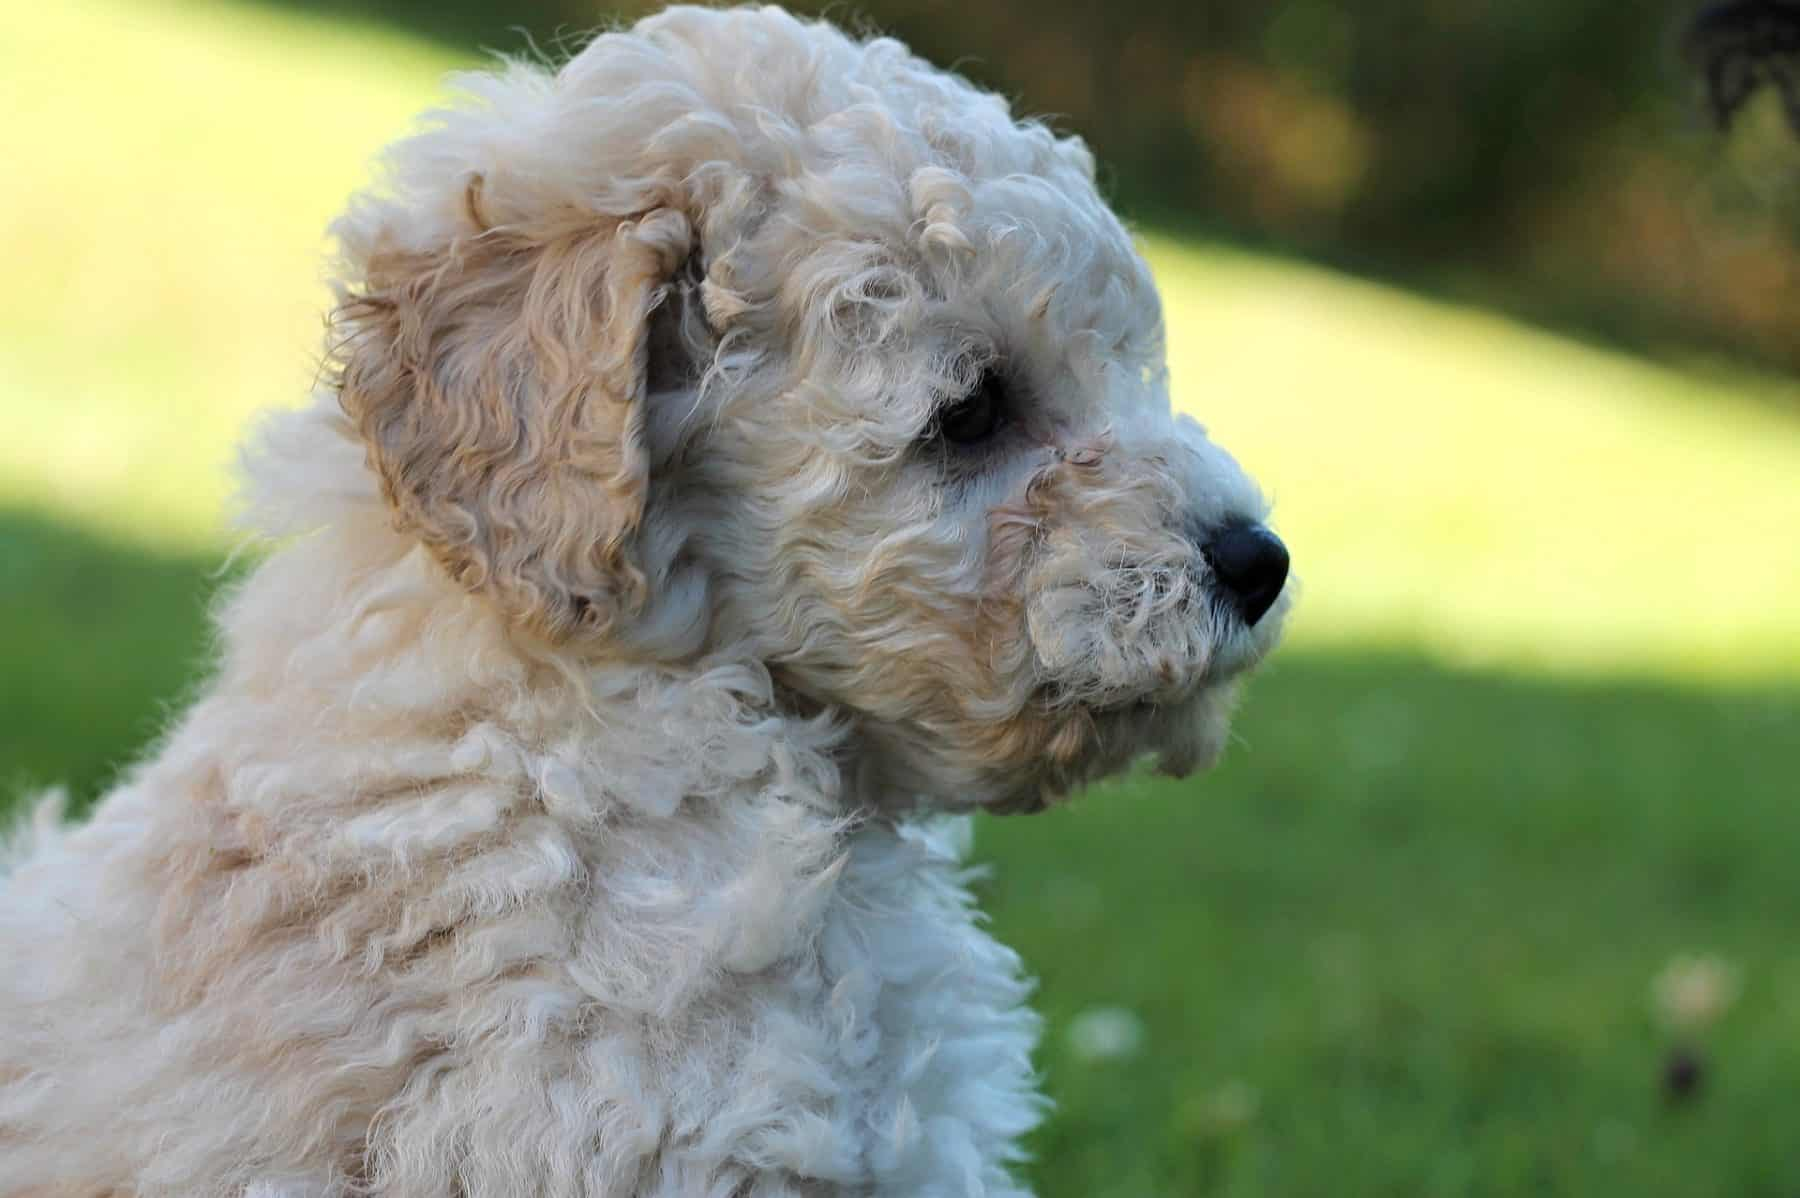 Poodle Puppies Everything You Need To Know The Dog People By Rover Com